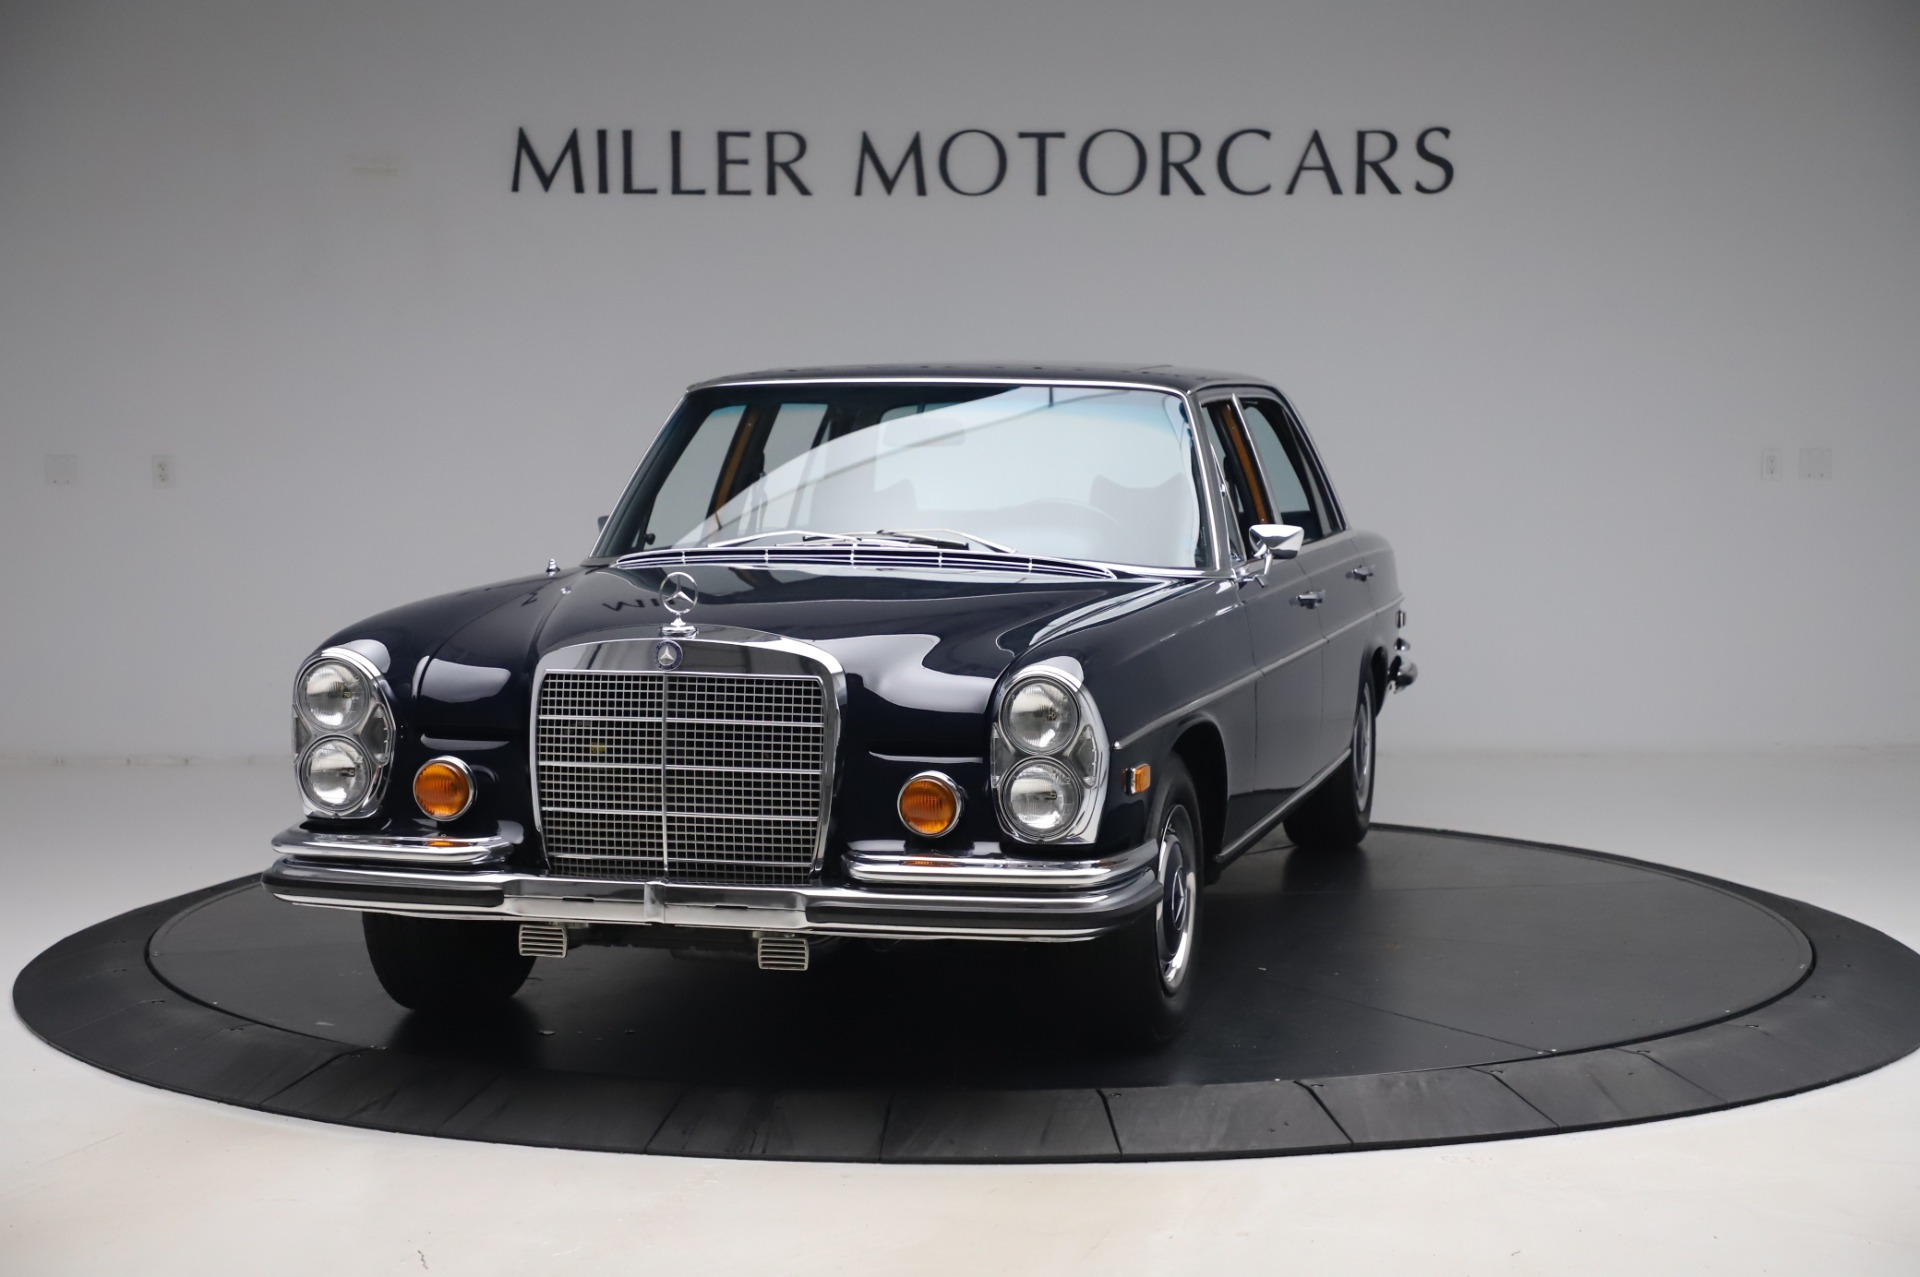 Used 1971 Mercedes-Benz 300 SEL 6.3 for sale Sold at Pagani of Greenwich in Greenwich CT 06830 1